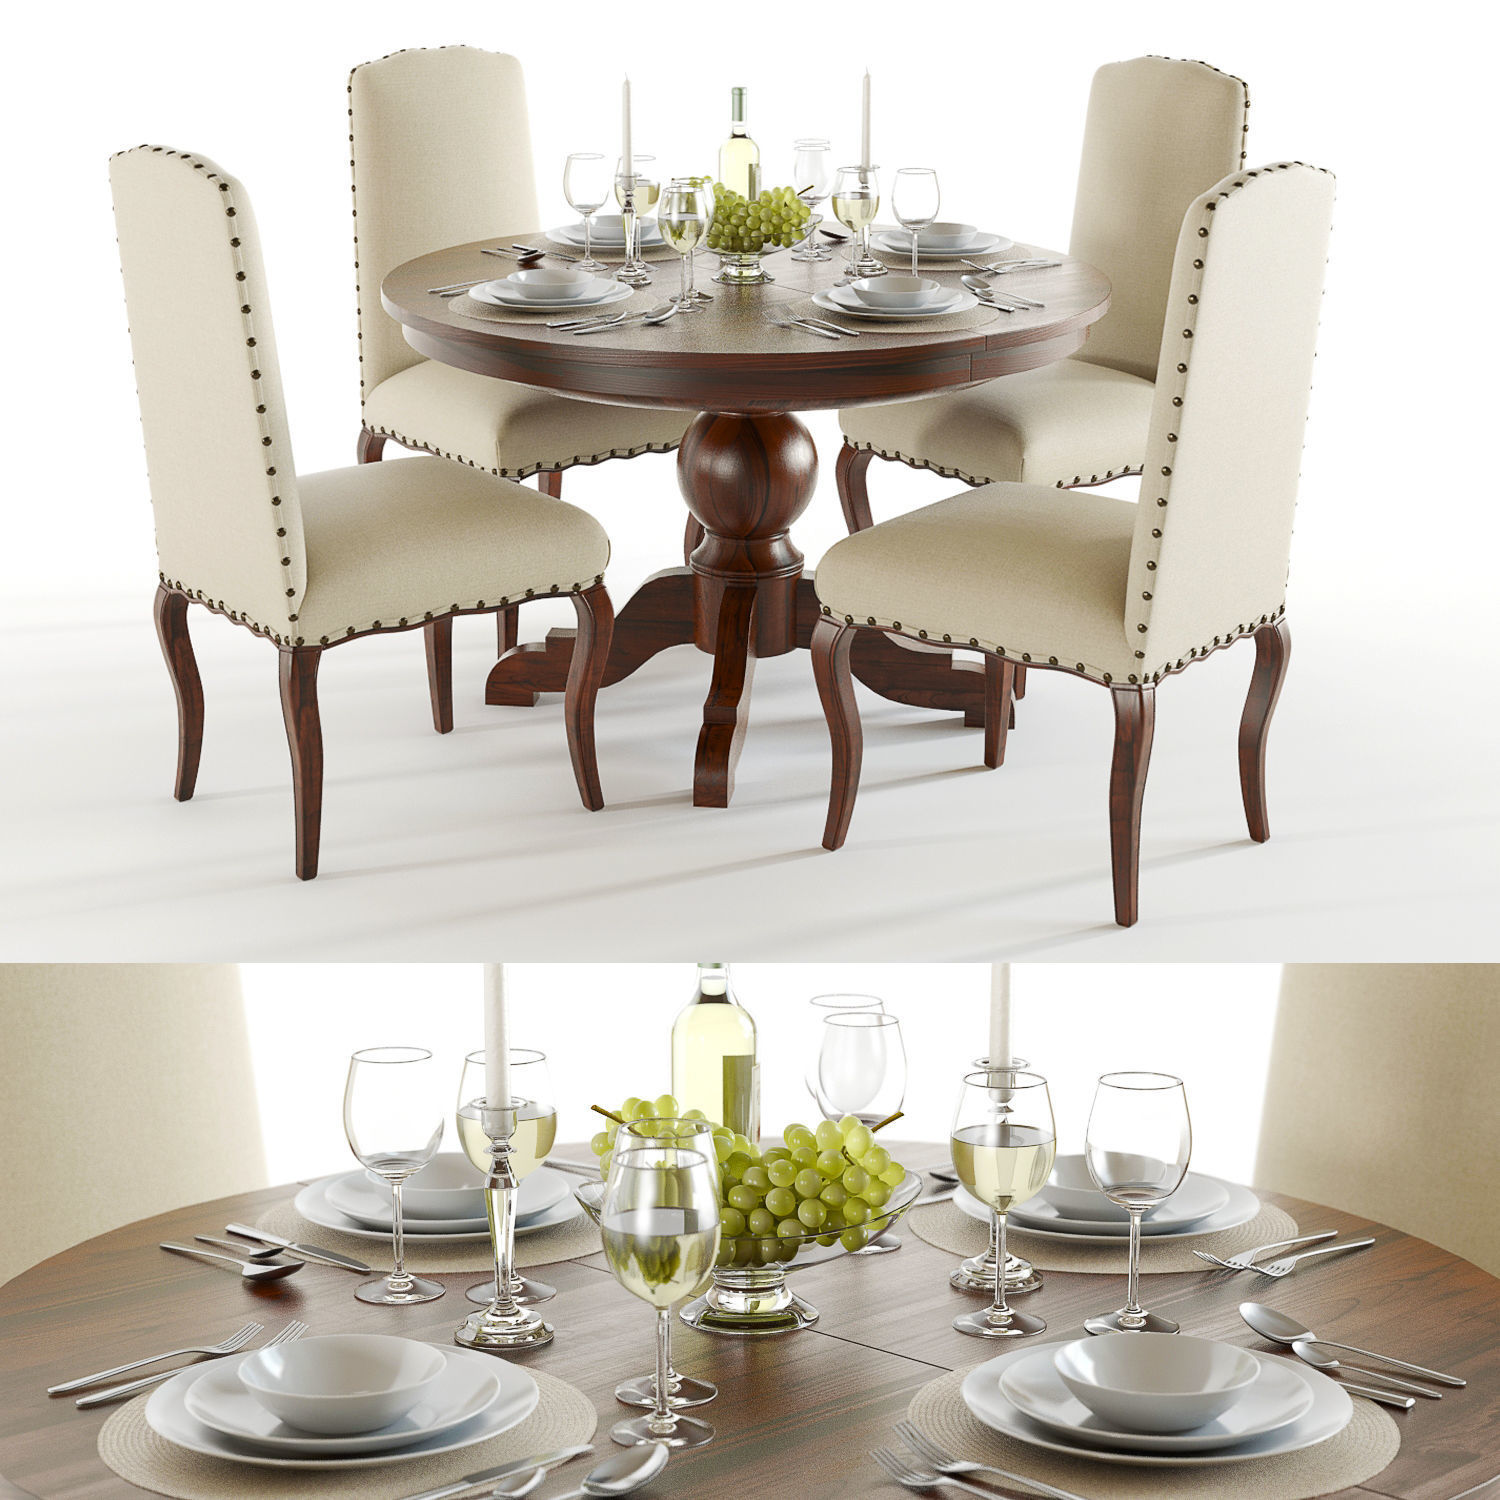 Pottery Barn Sumner And Calais Dining Set Model